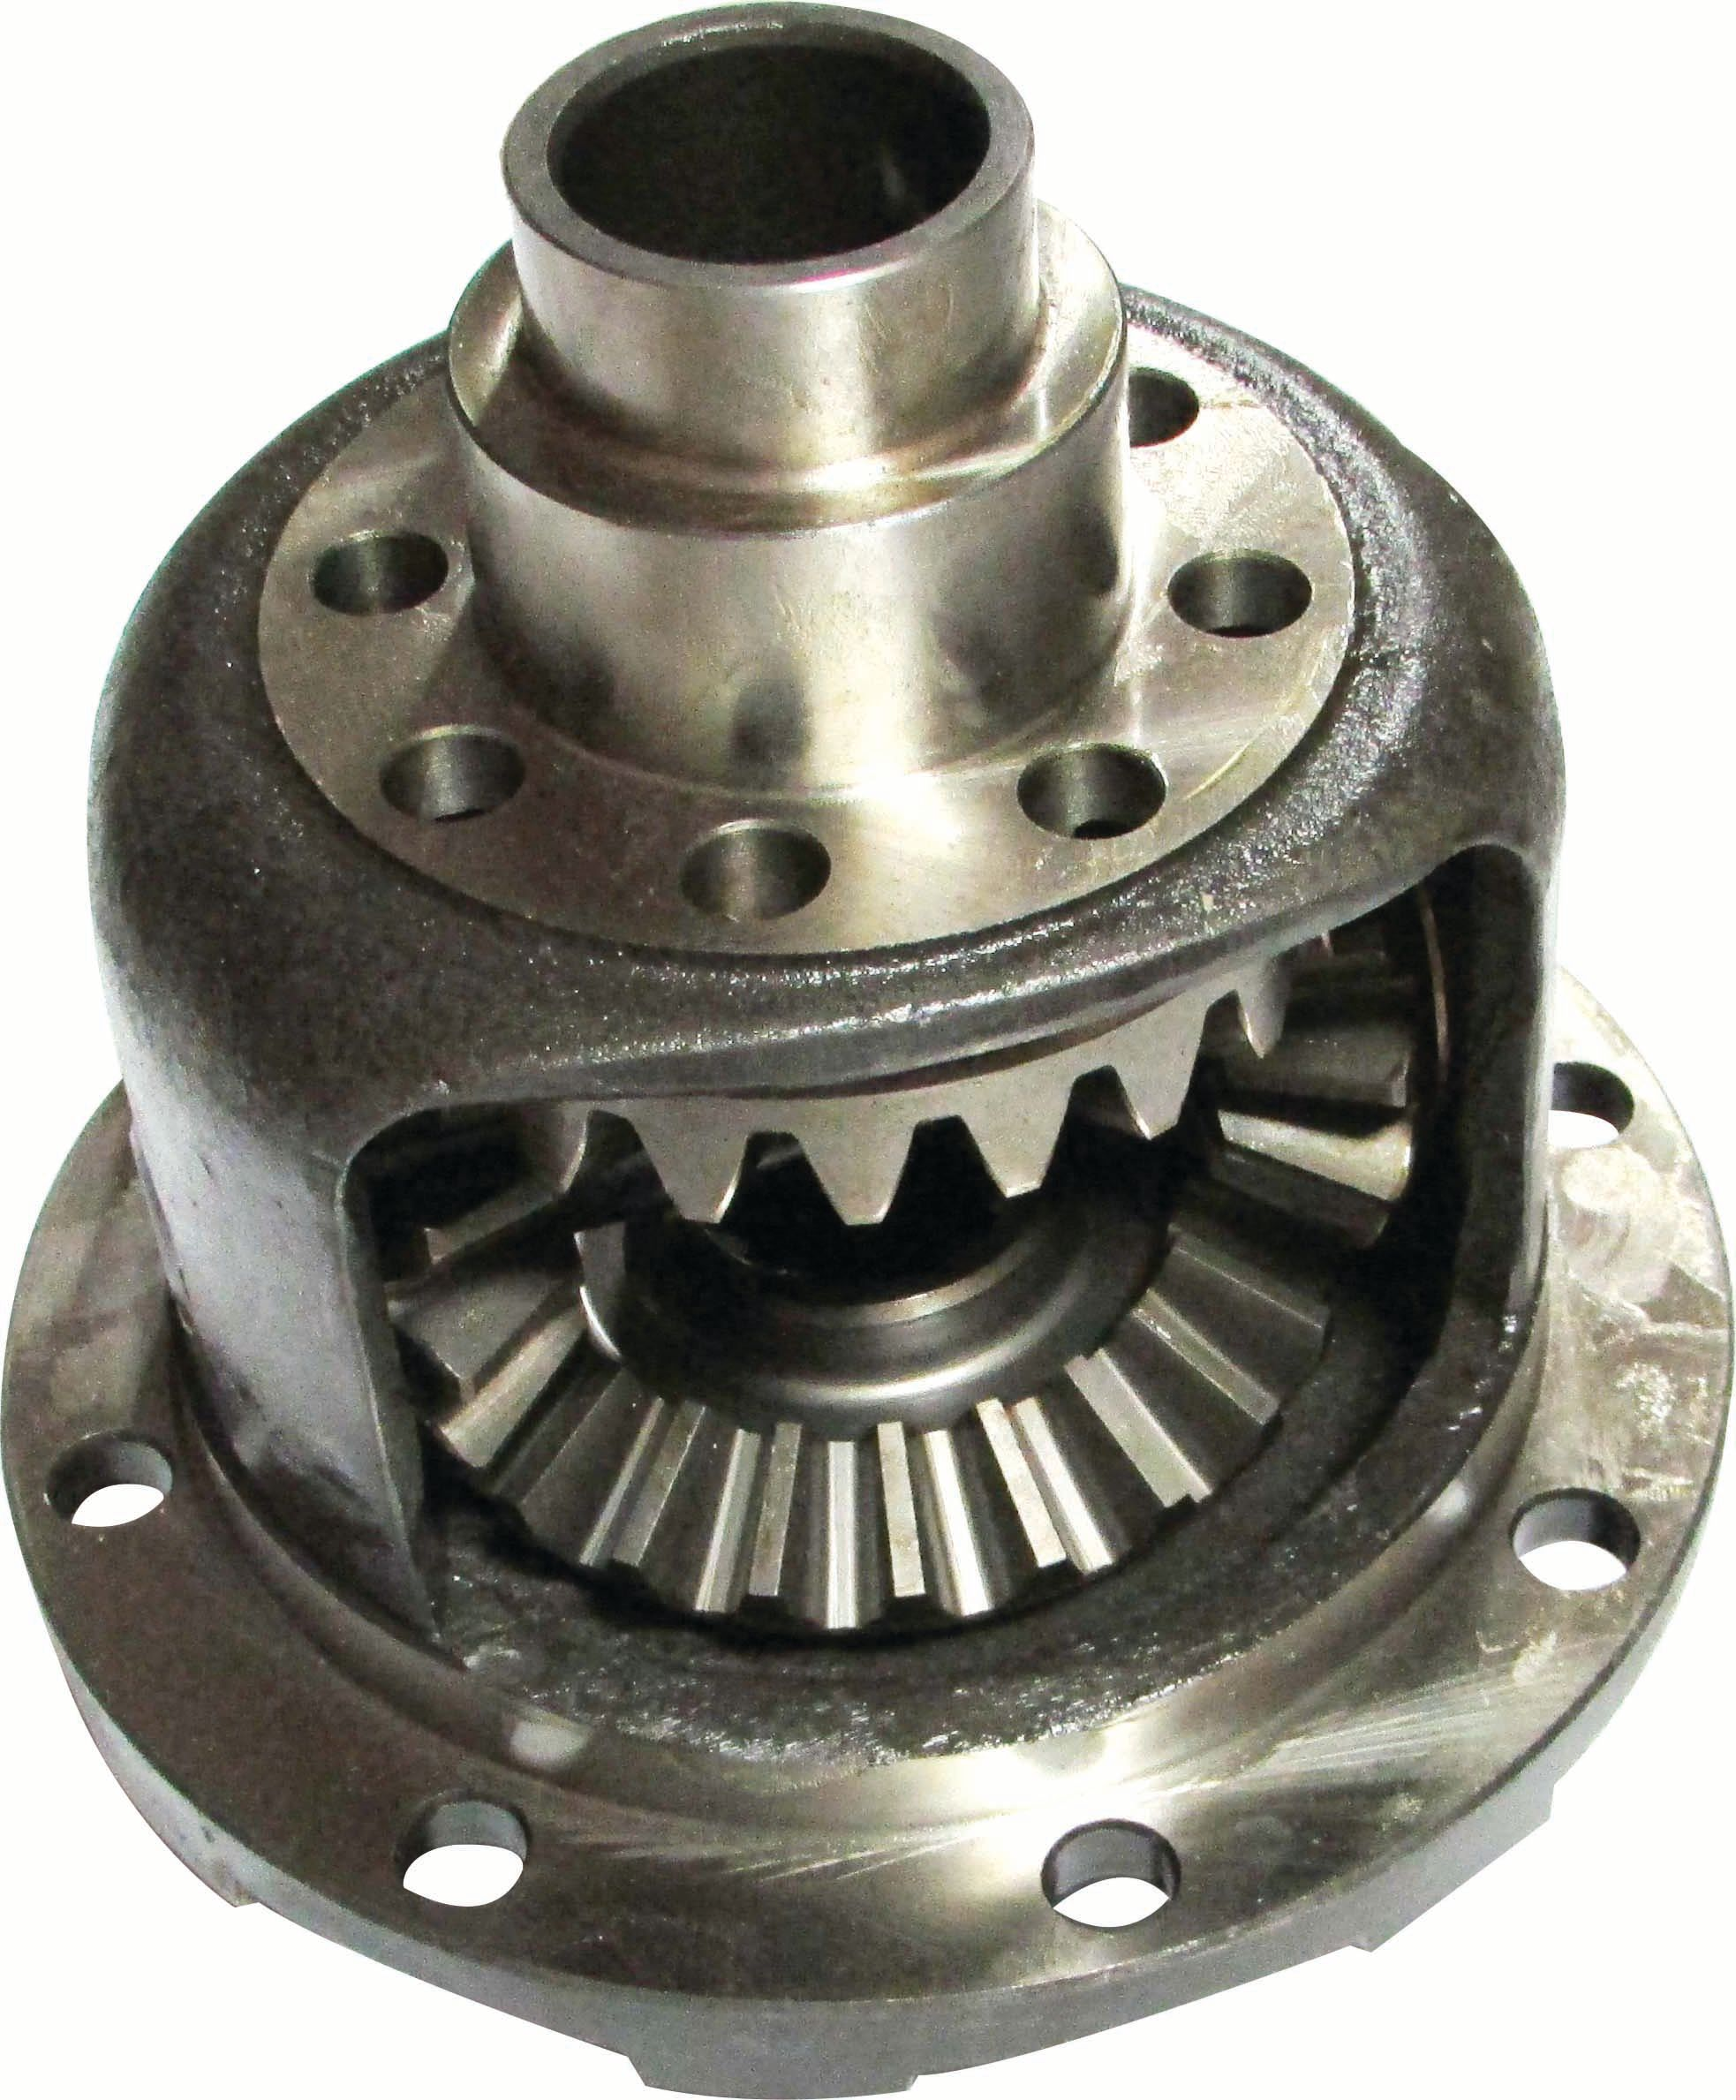 WHITE OLIVER DIFFERENTIAL ASSY - WITH GEARS